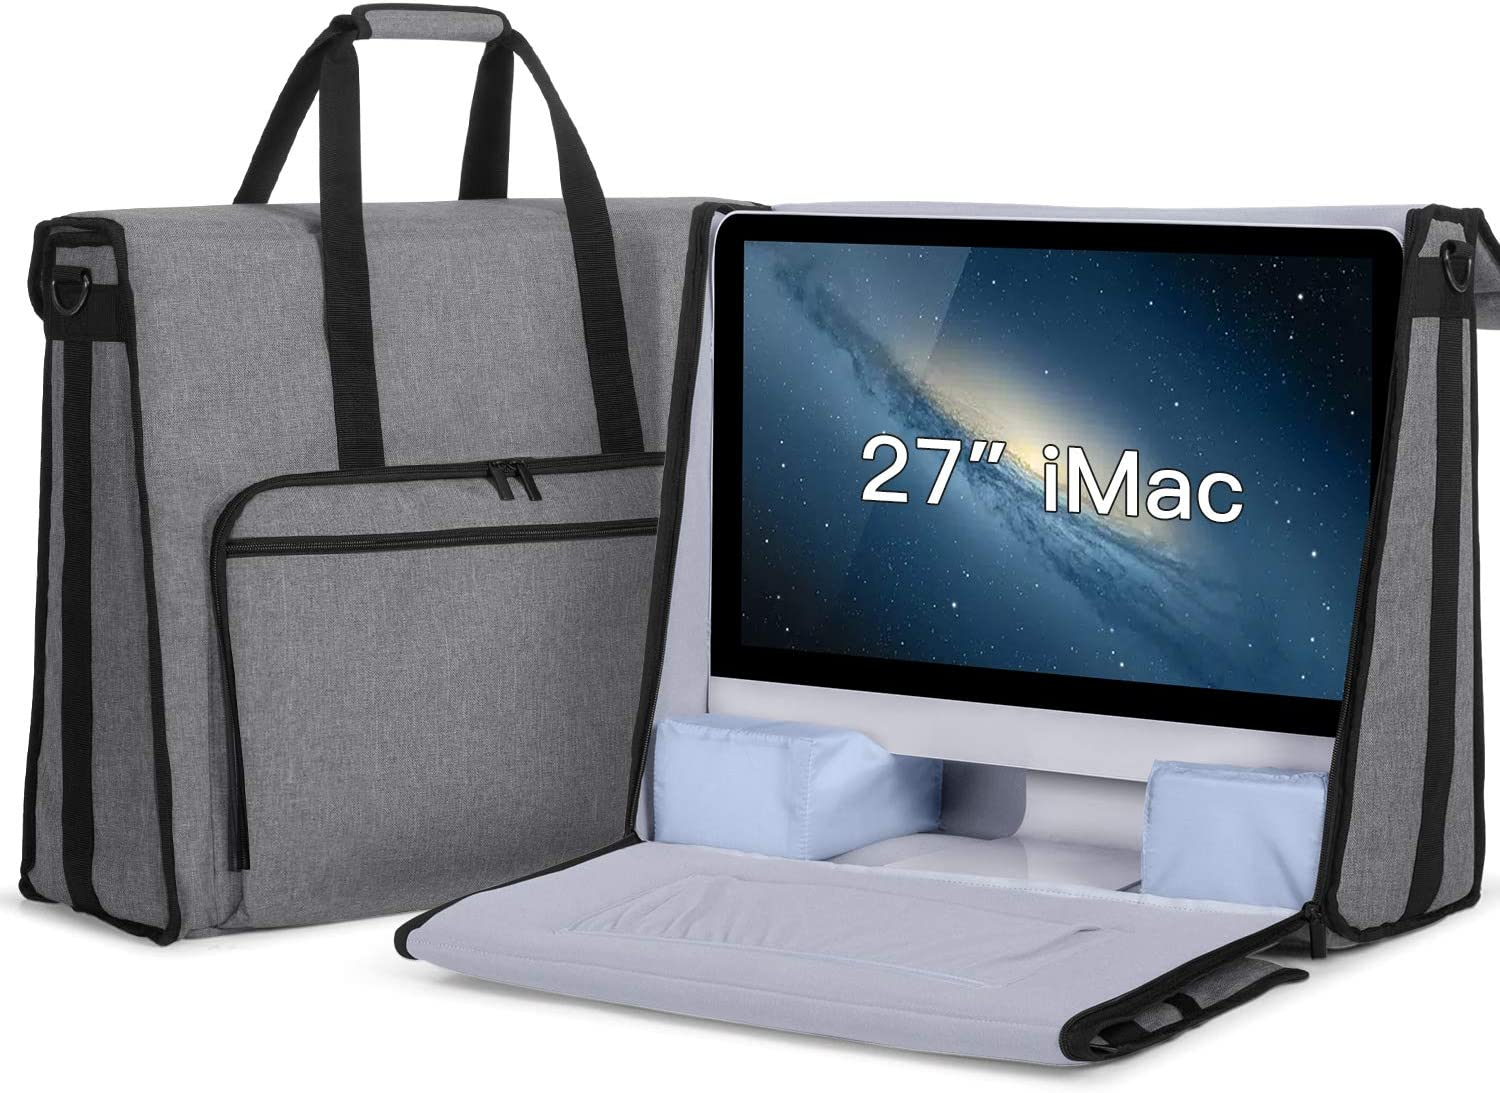 "Damero Carrying Tote Bag Compatible with Apple 27"" iMac Desktop Computer, Travel Storage Bag for iMac 27-inch and Other Accessories, Gray"